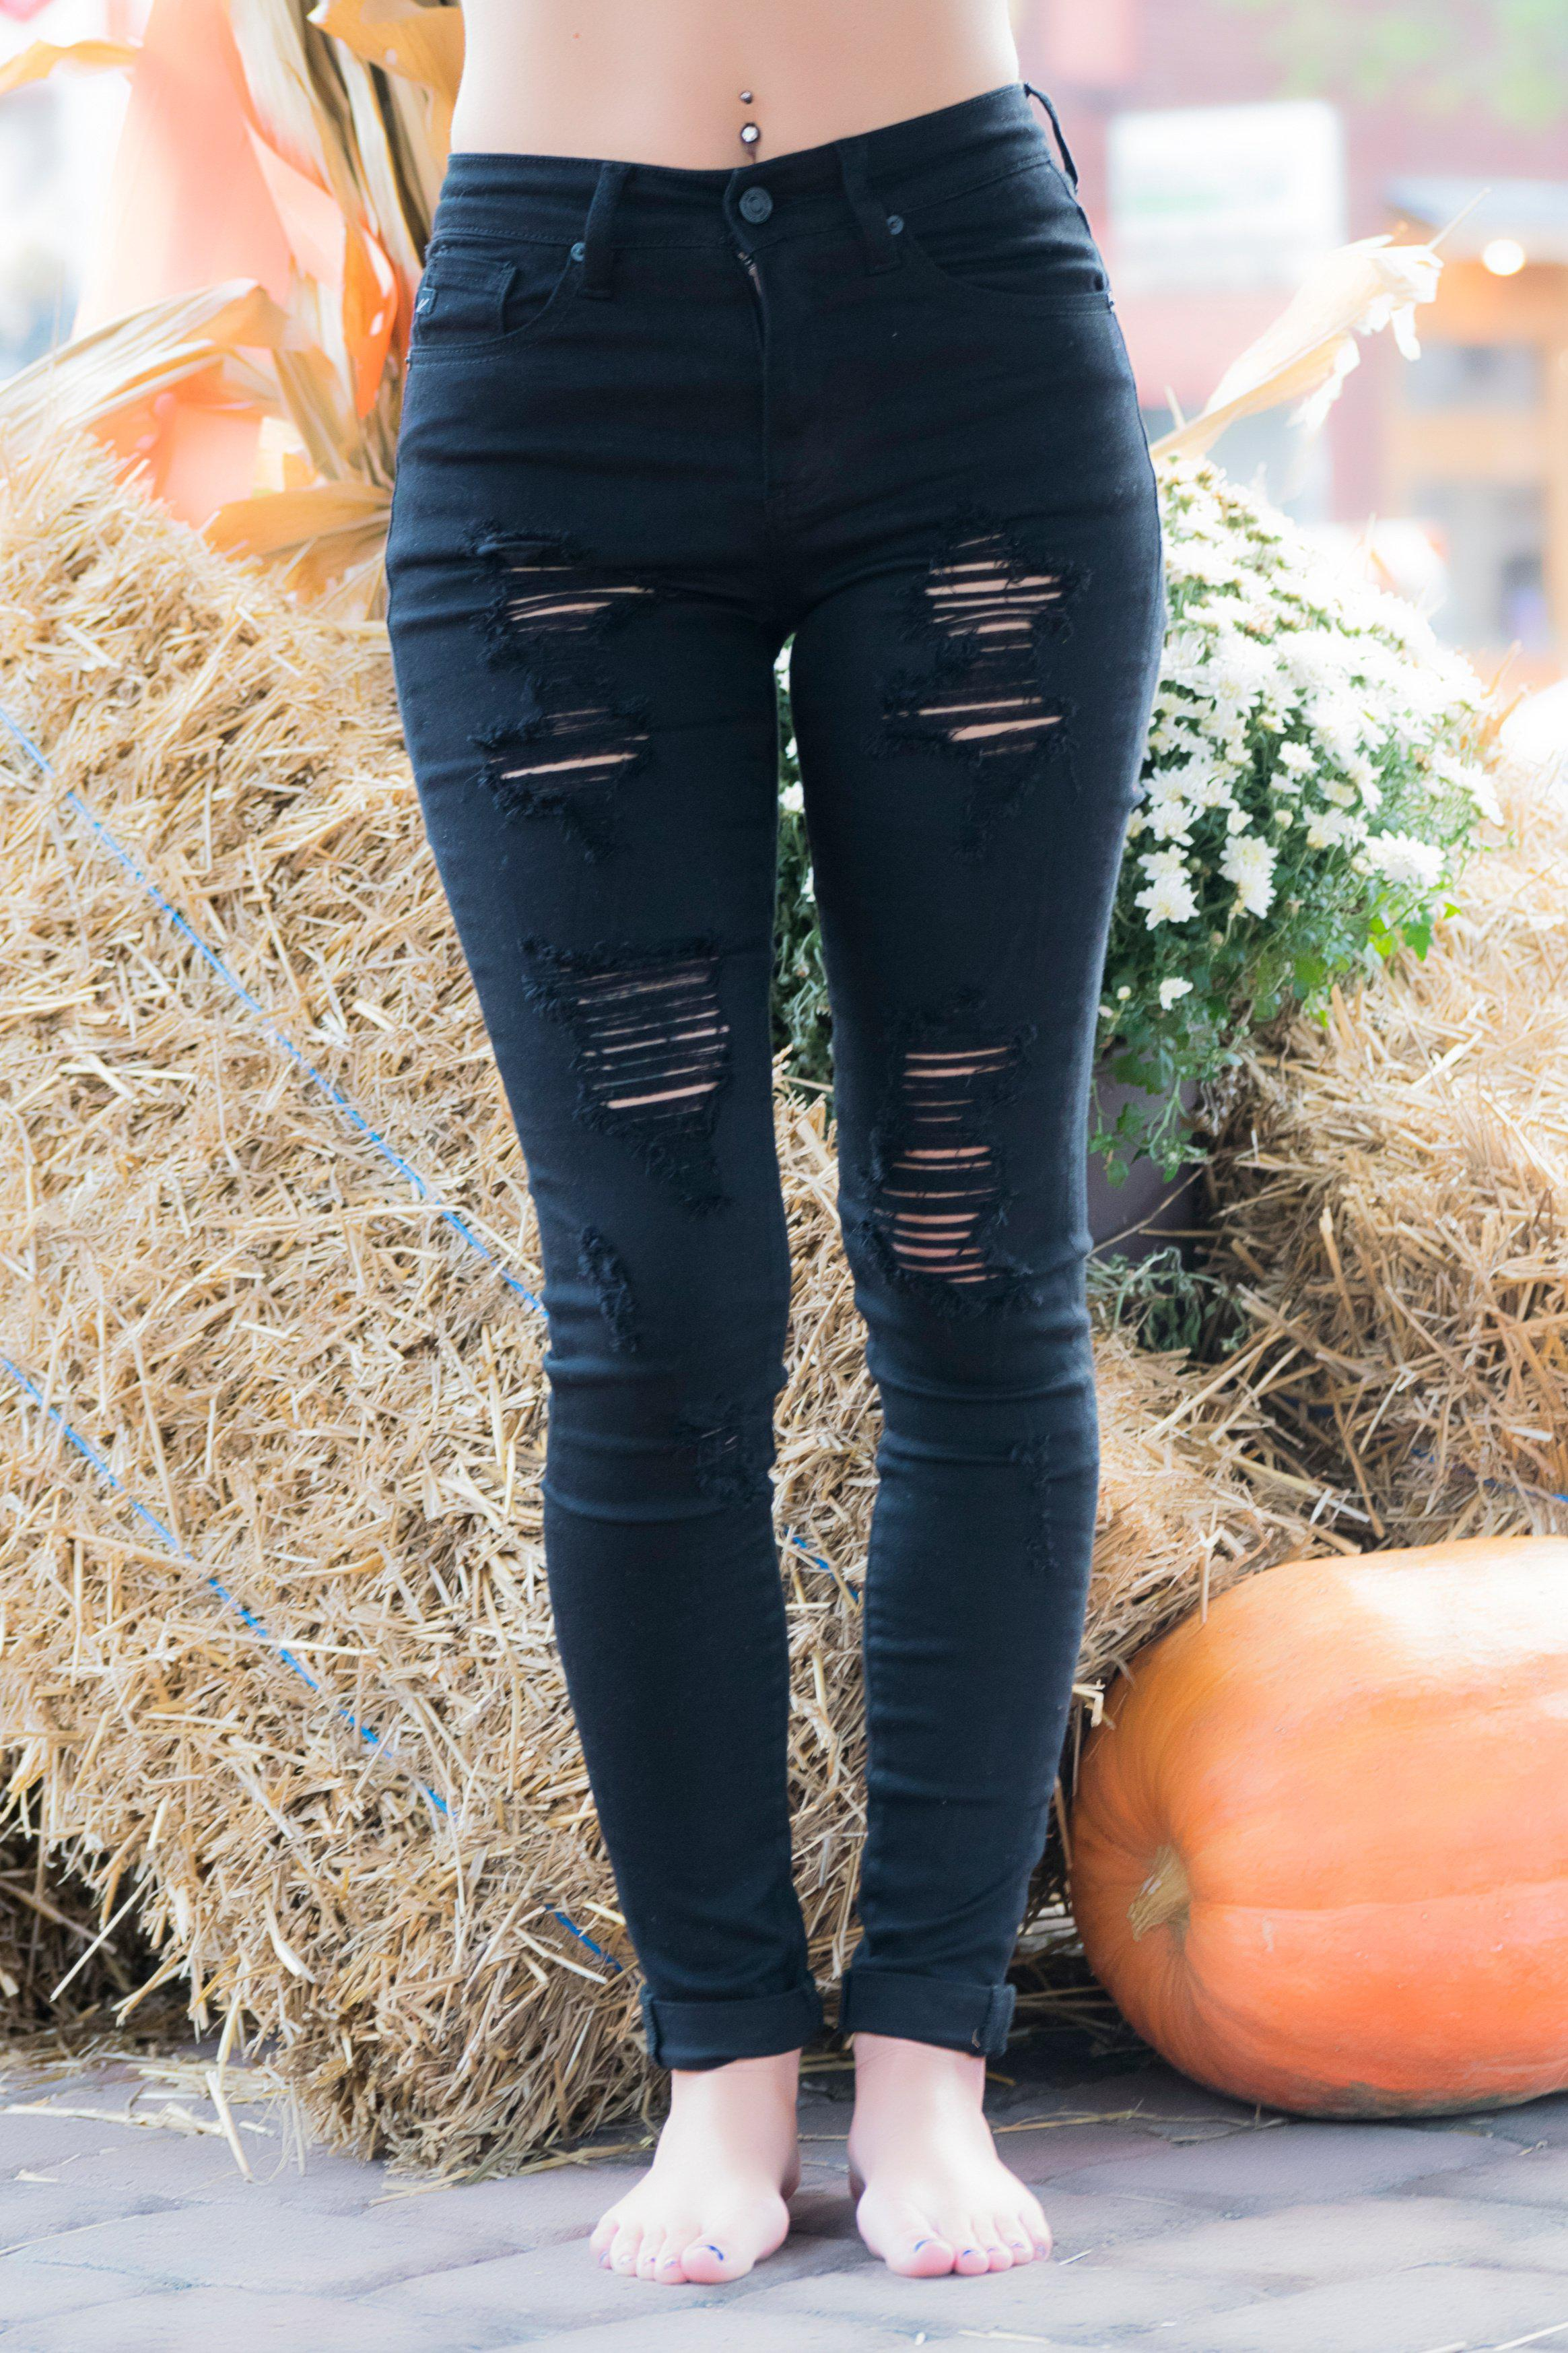 Image of Emberly High Rise KanCan Black Distressed Jeans